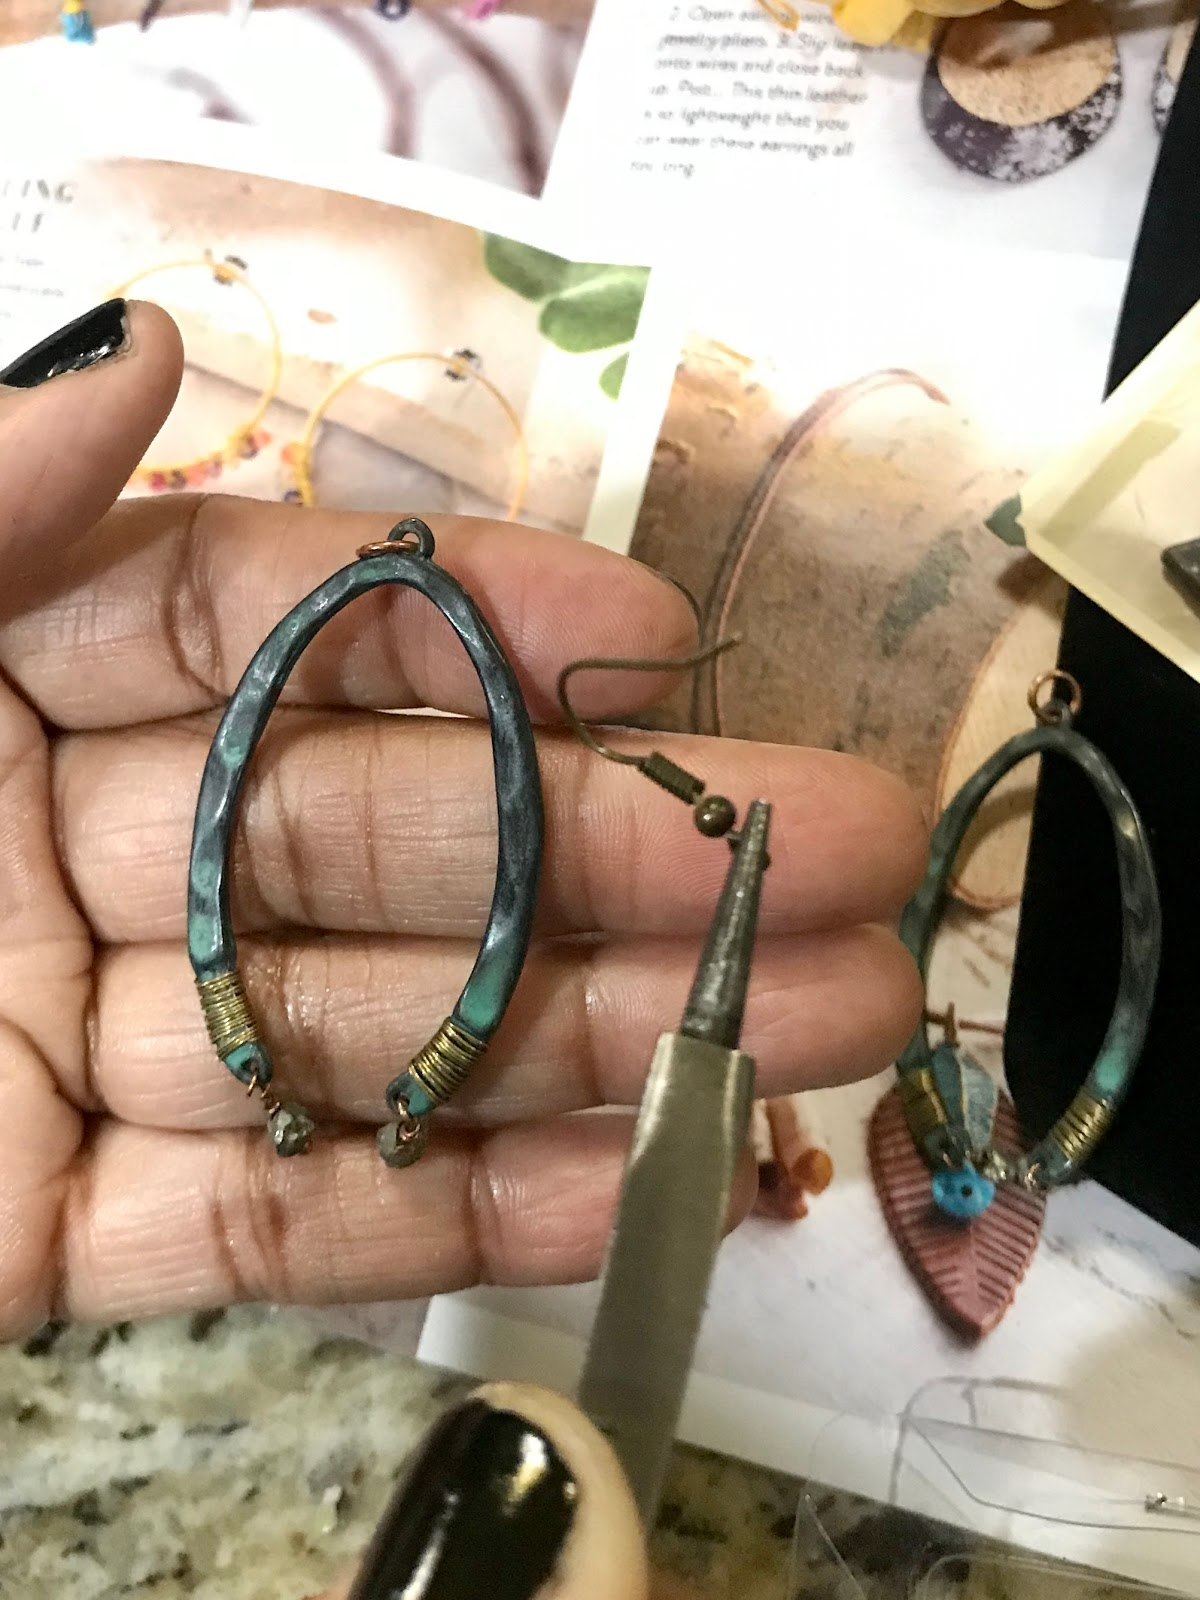 Adding a jump ring to poetic spirit hand crafted jewelry